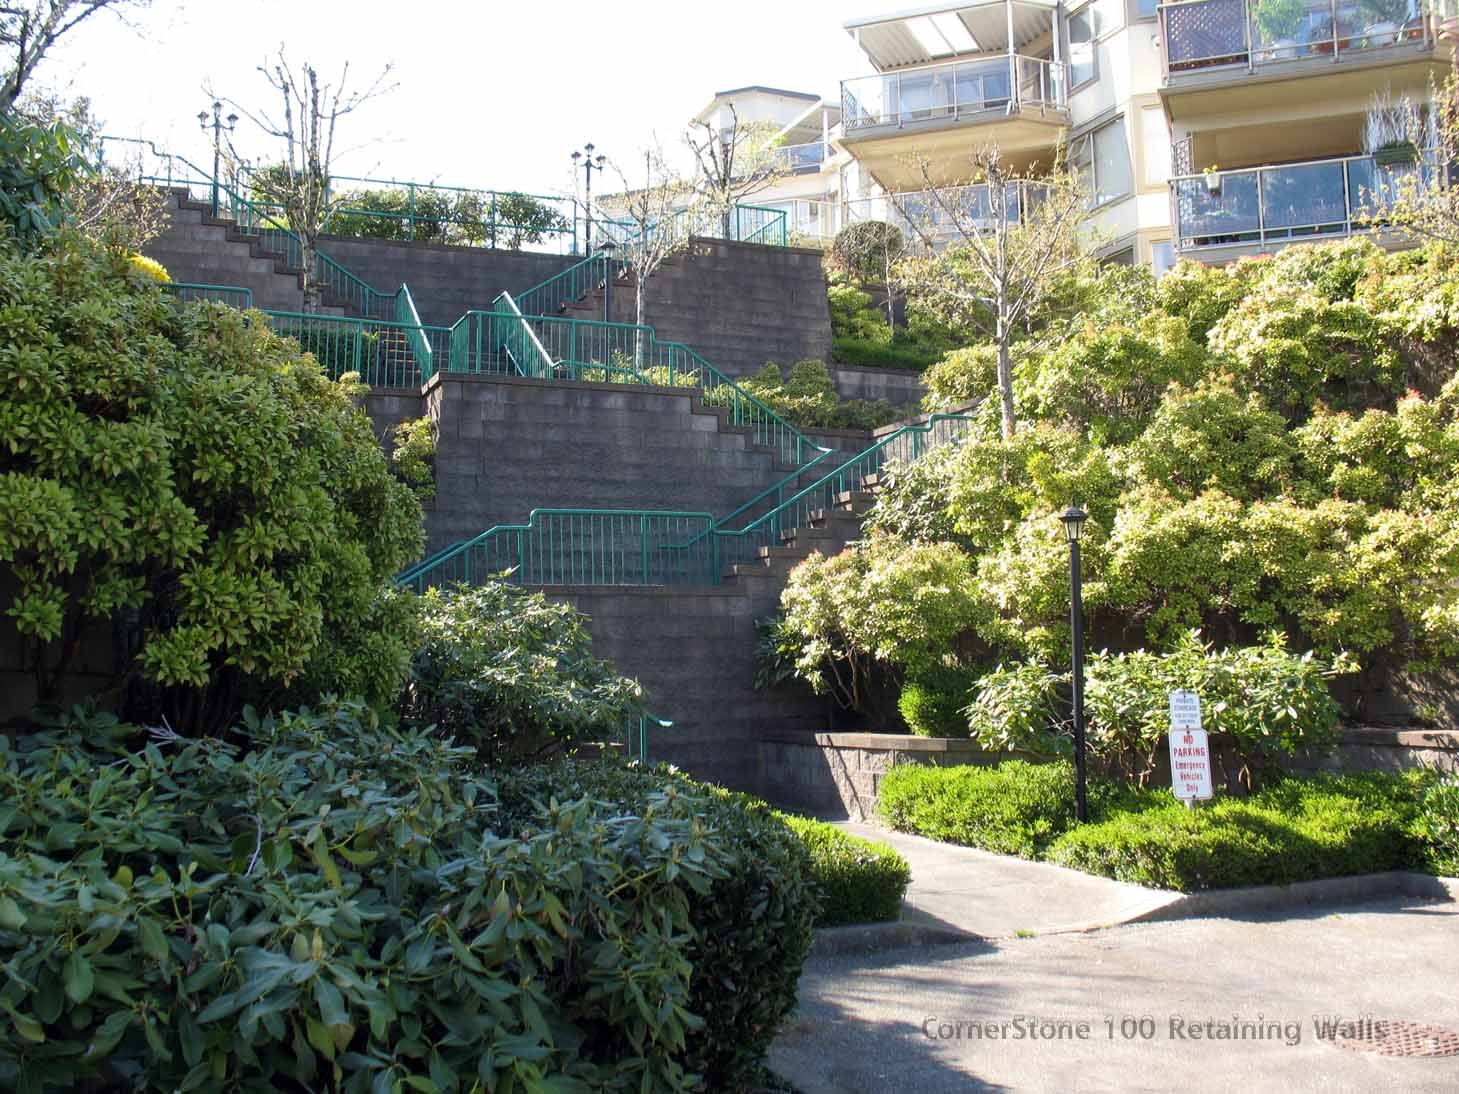 stairs and terraced built with CornerStone retaining walls